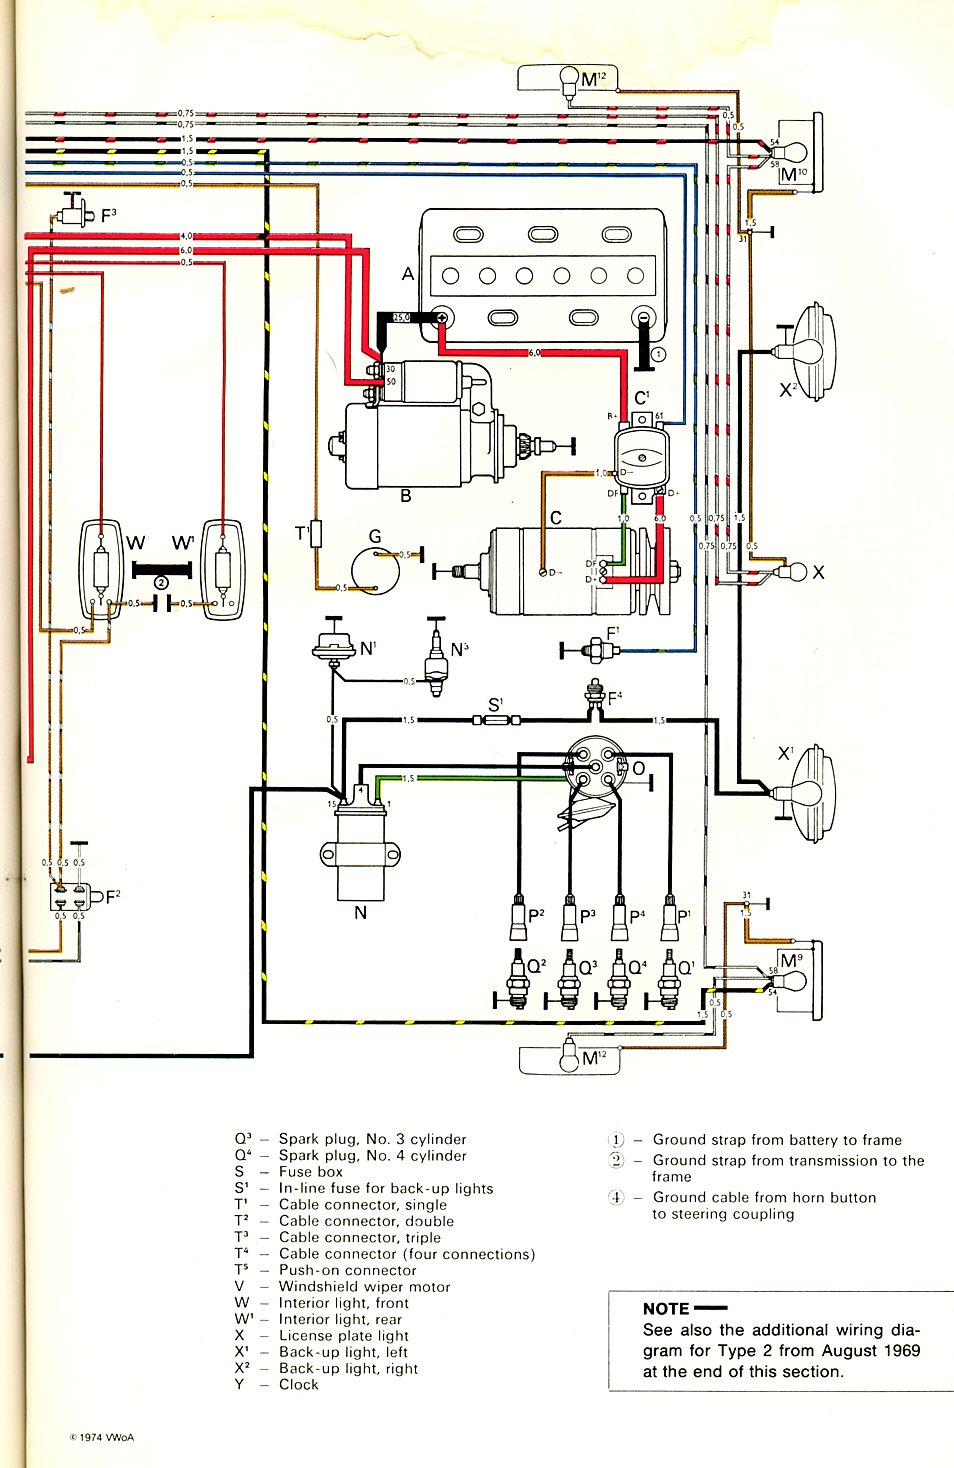 TheSamba.com :: Type 2 Wiring Diagrams on 1974 vw engine diagram, 74 beetle parts, 74 beetle solenoid, vw beetle diagram, 74 beetle seats, 74 beetle voltage regulator, 74 beetle exhaust, 74 beetle engine, 74 vw bug vacuum diagram, 74 beetle battery, 73 vw bug signal diagram,